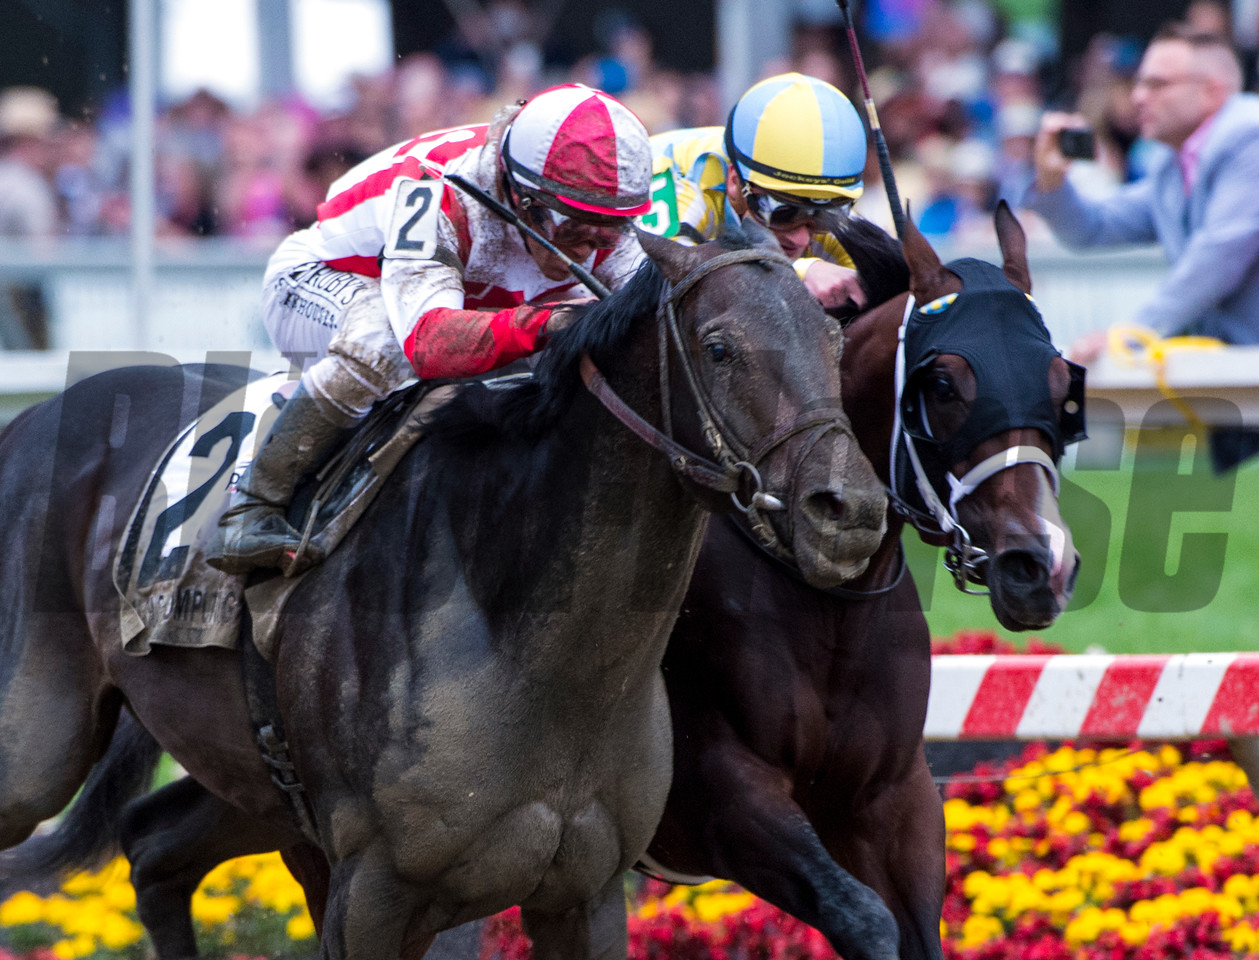 Cloud Computing with jockey Javier Castellano, left catches Classic Empire with jockey Julien Leparoux at the wire to win the 142nd running of the Preakness Stakes Saturday May 20, 2017 at Pimlico Race Course in Baltimore, MD.  Photo by Skip Dickstein